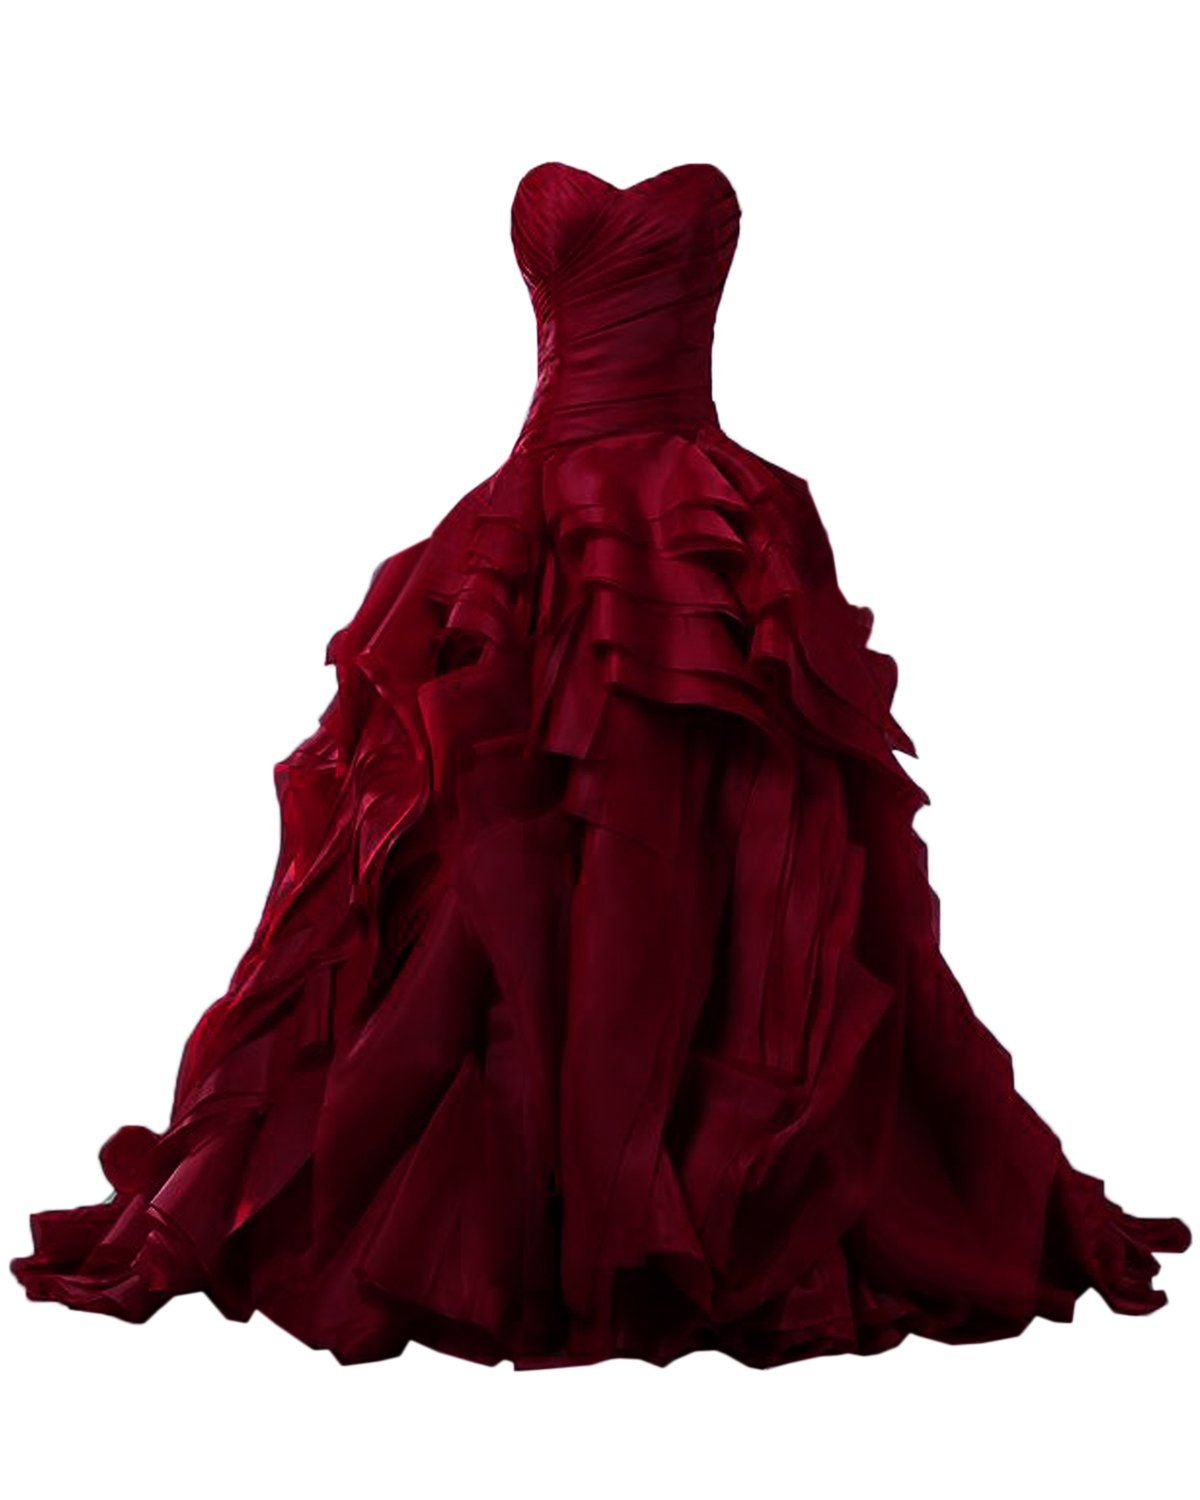 Sunvary Luxurious Burgundy Ball Gown Quinceanera Dresses for Prom with  Ruffles - US Size 20W- Burgundy 764ccc851f67